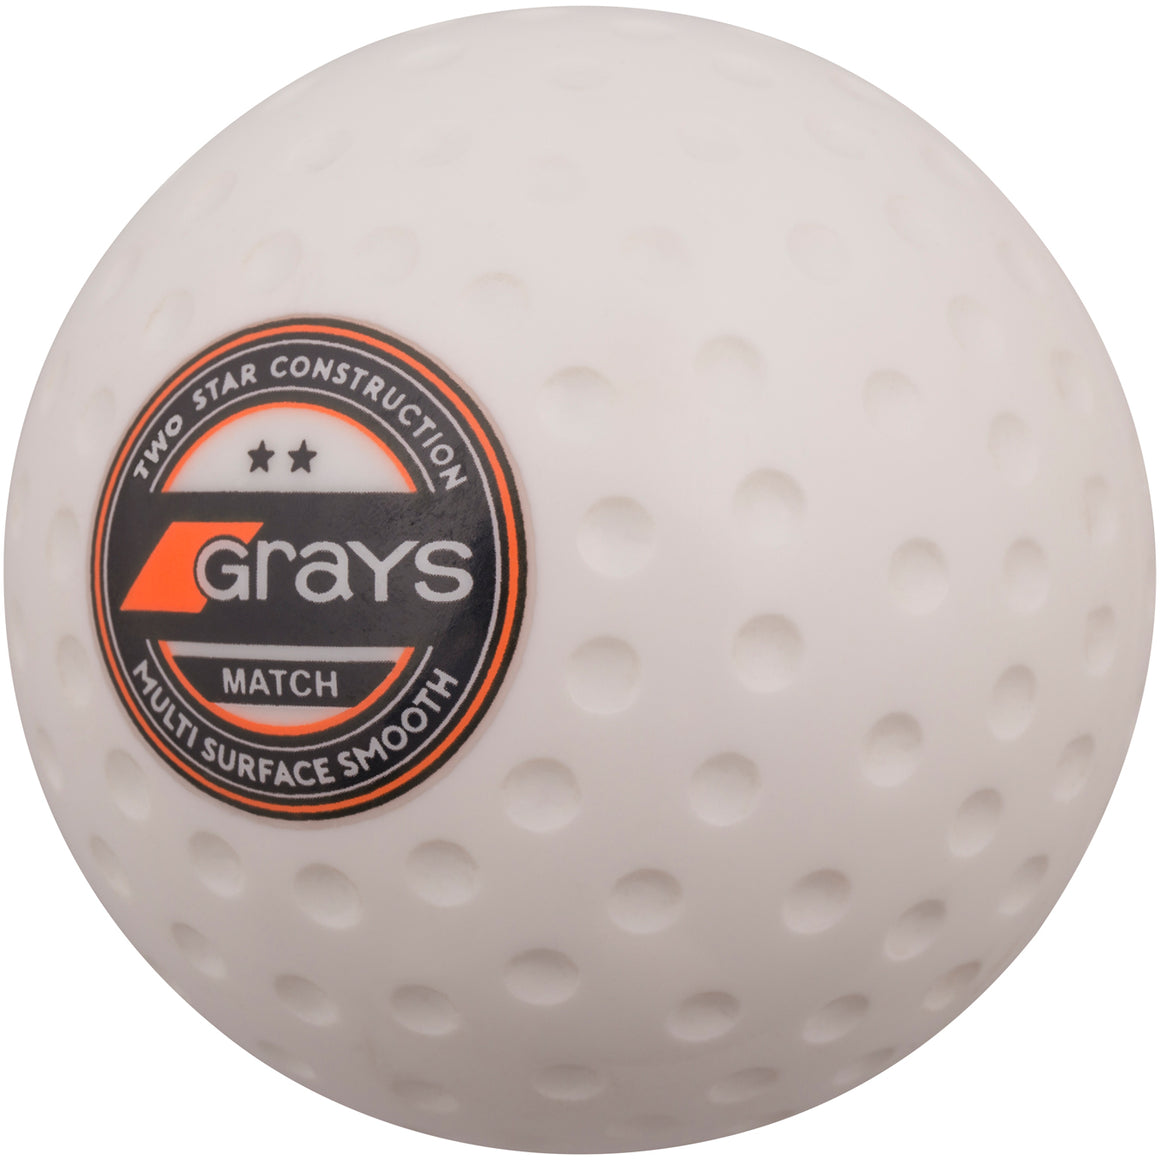 Grays Match Ball